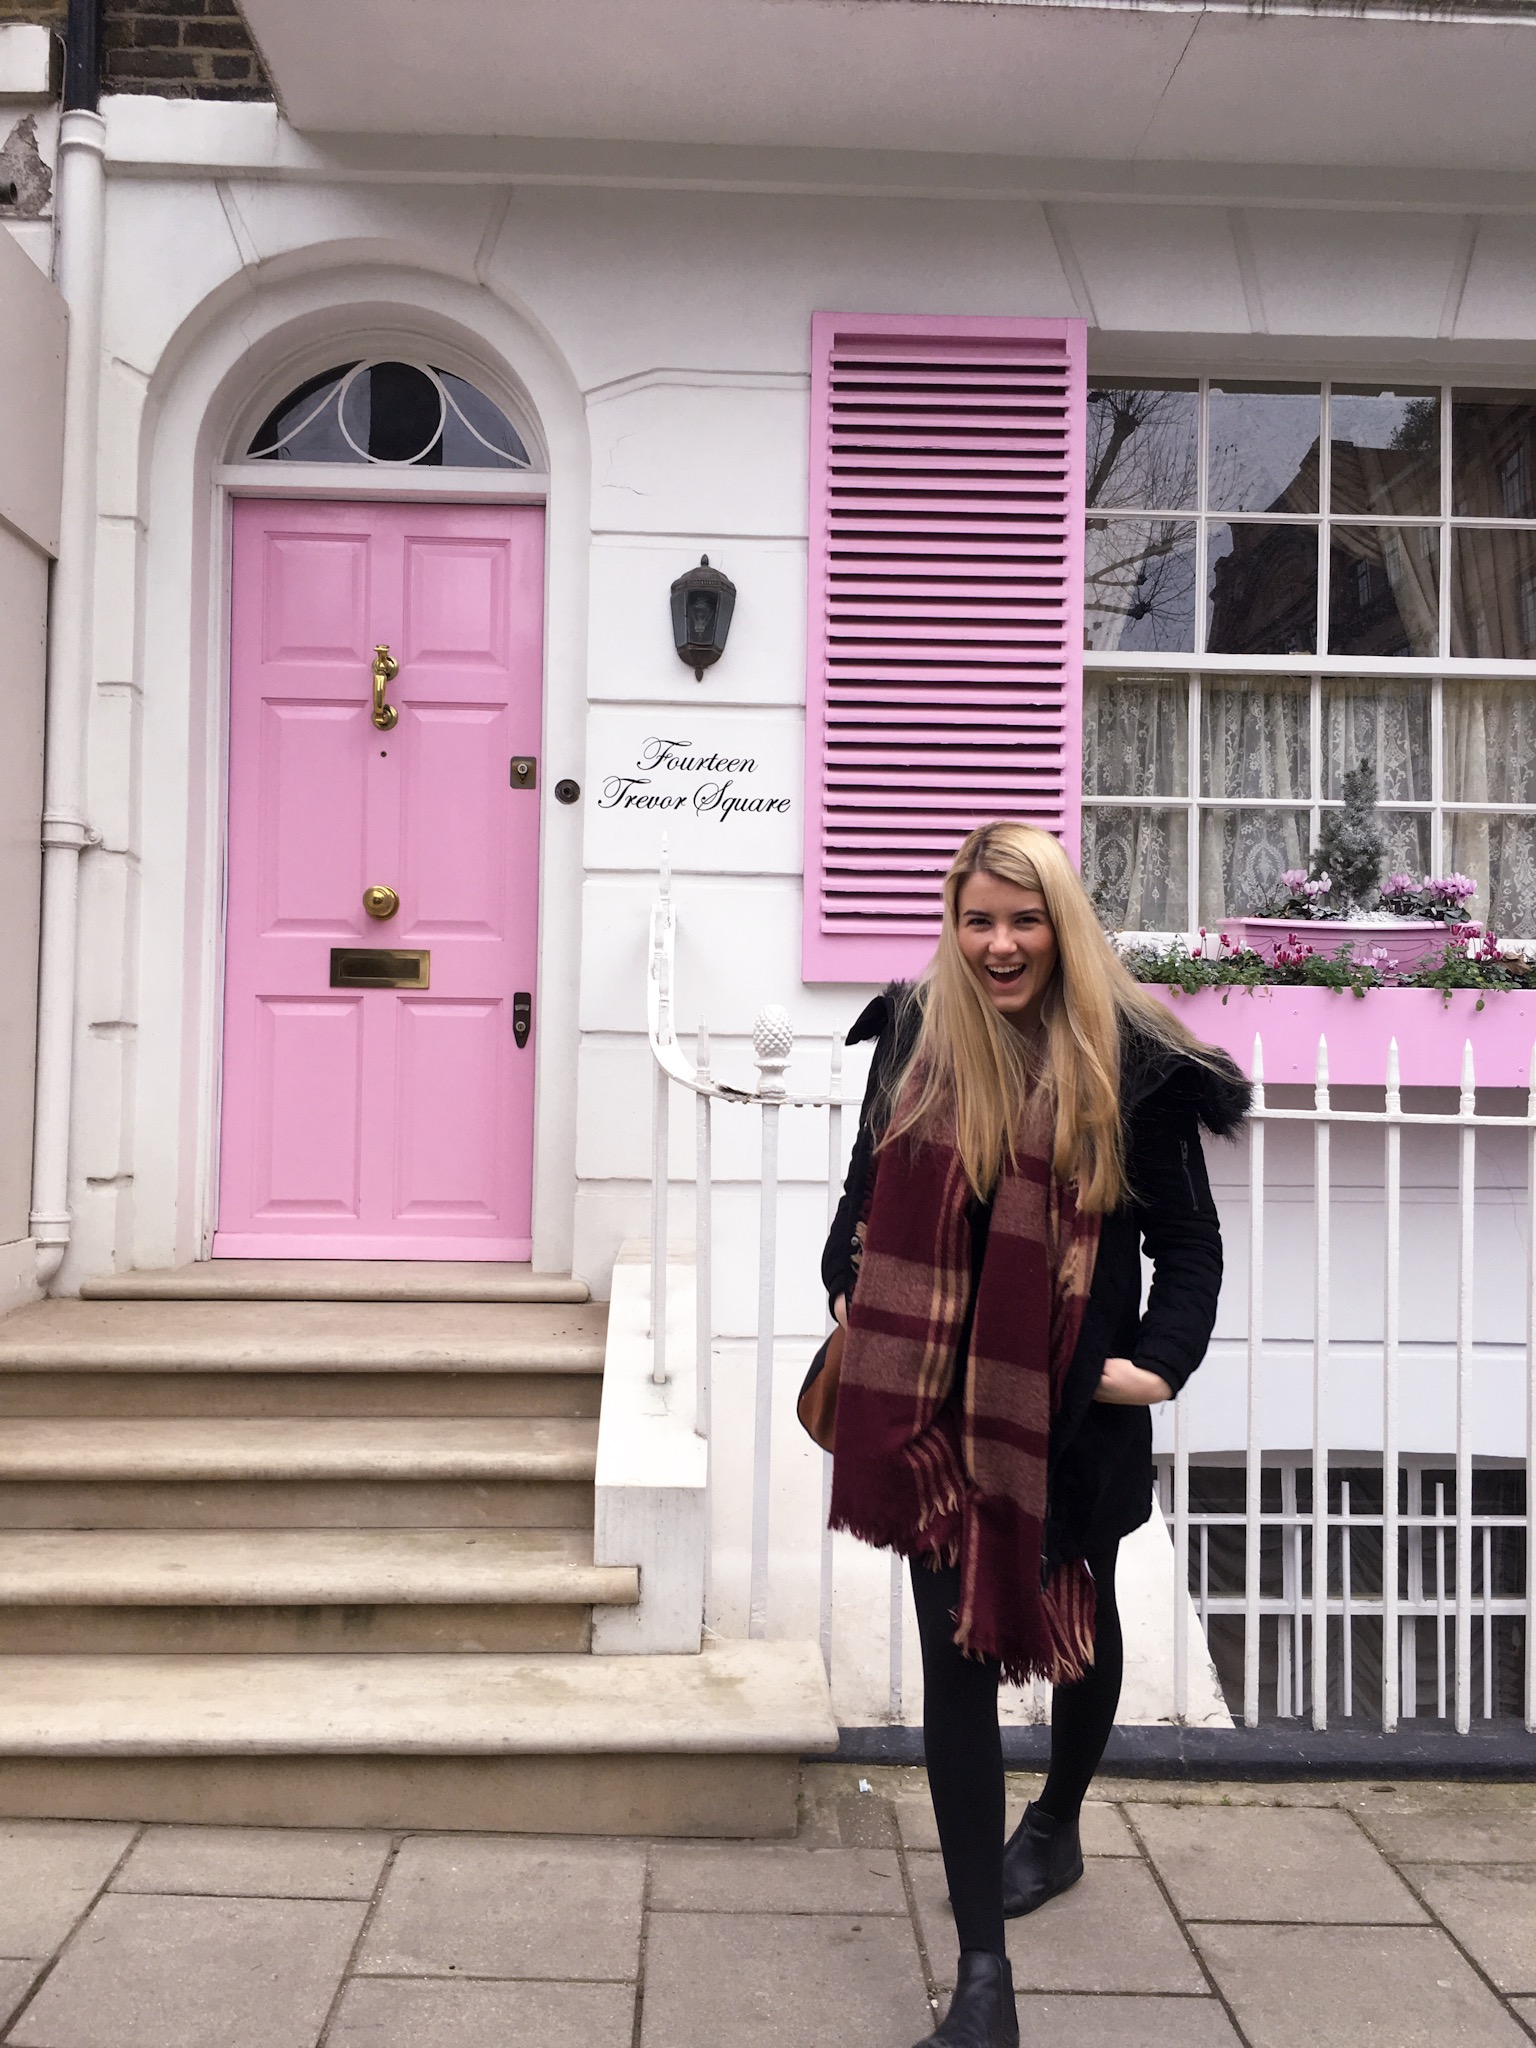 Bright pink door in London